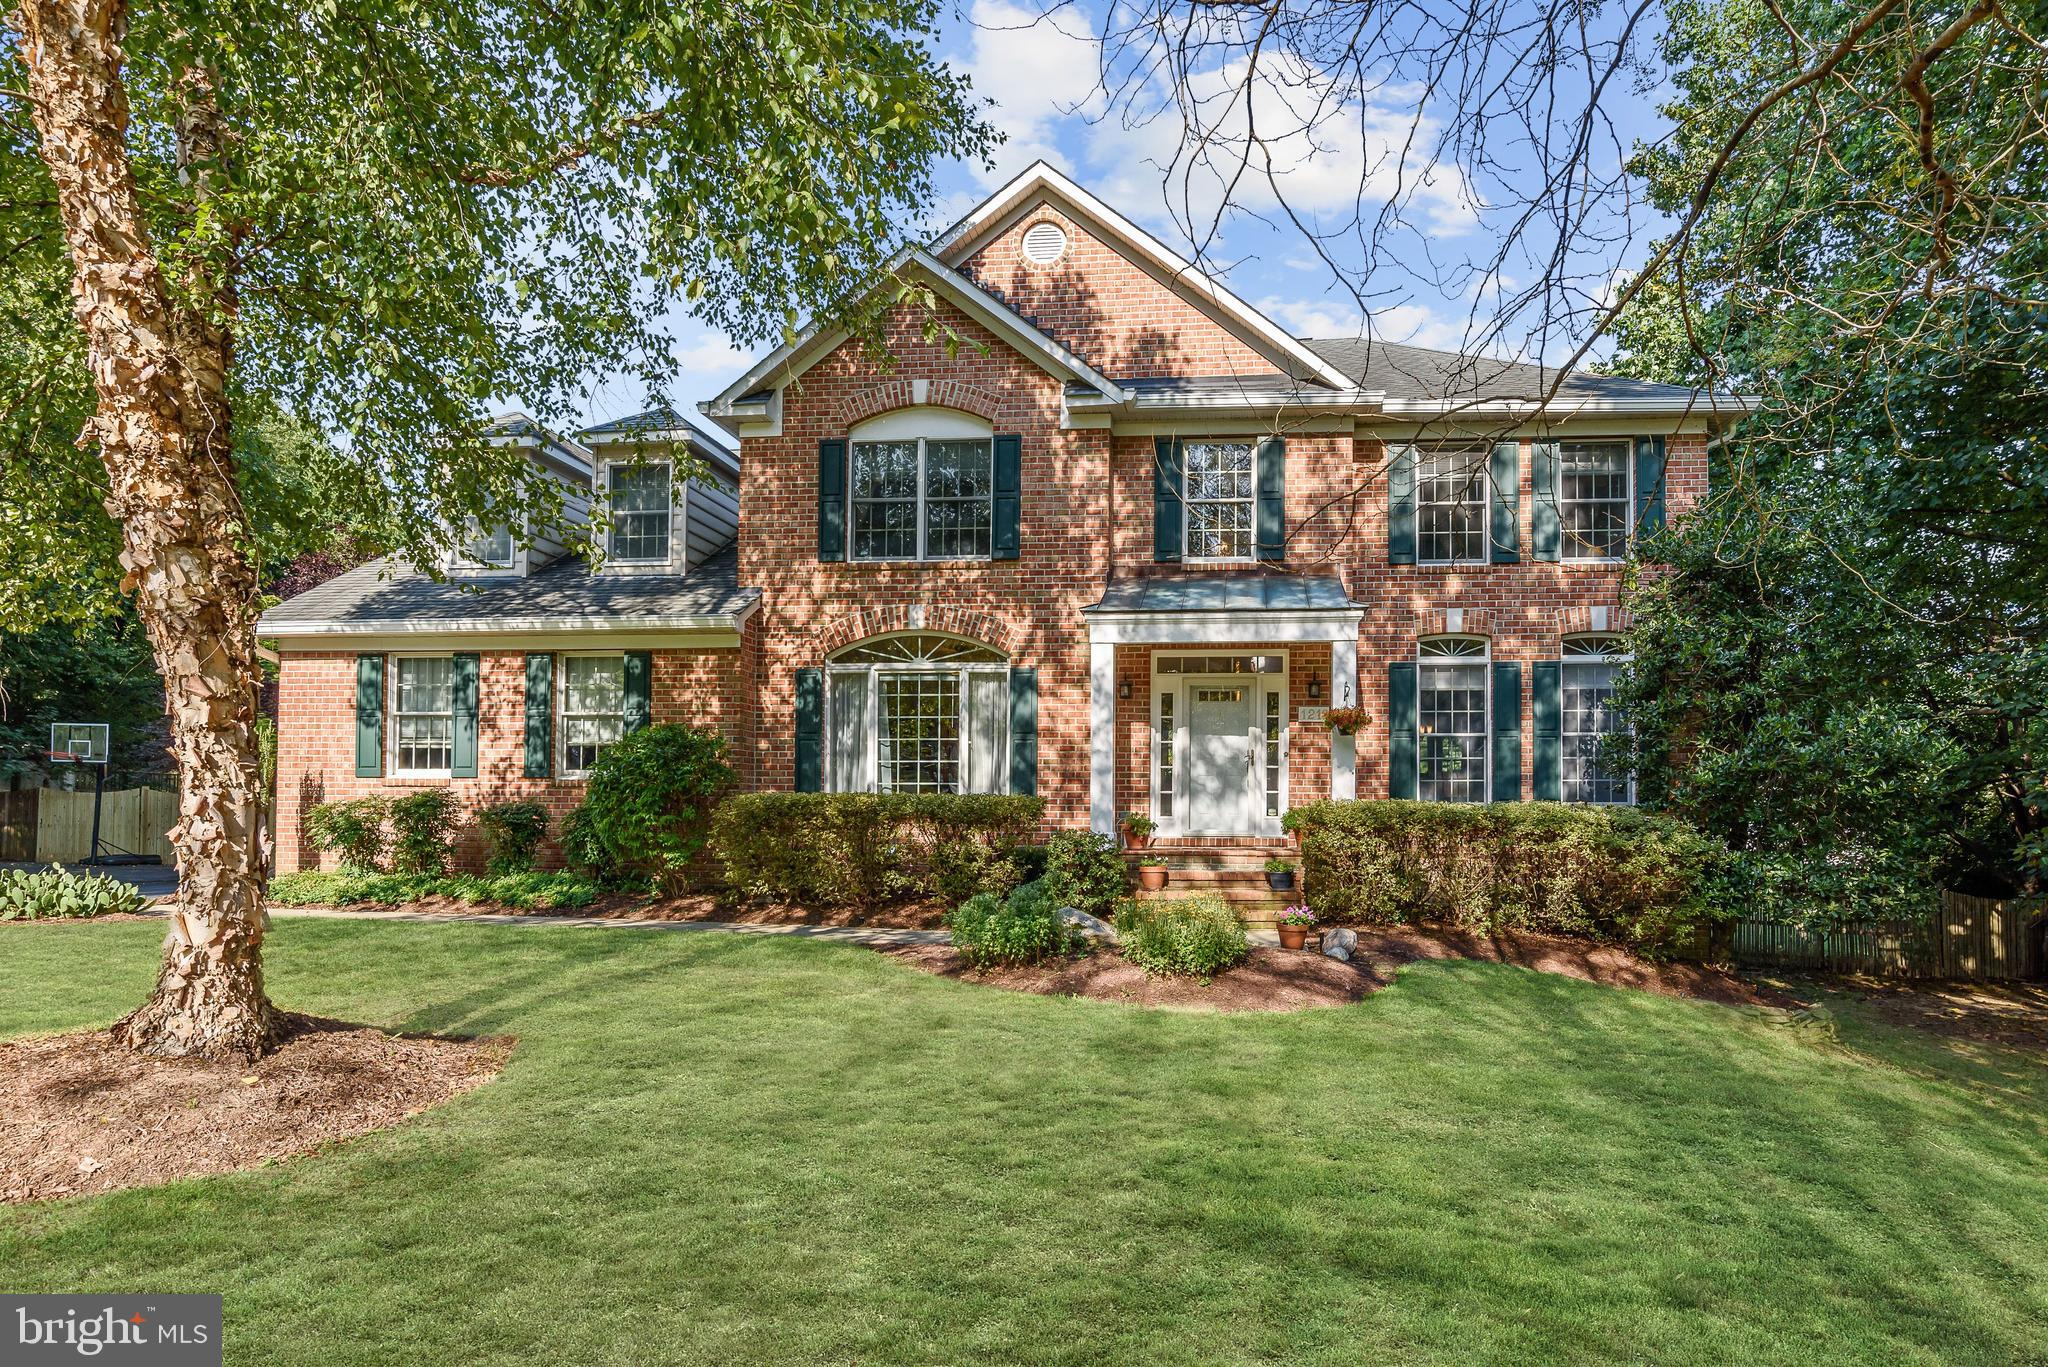 1211 ASQUITHPINES PLACE, ARNOLD, MD 21012